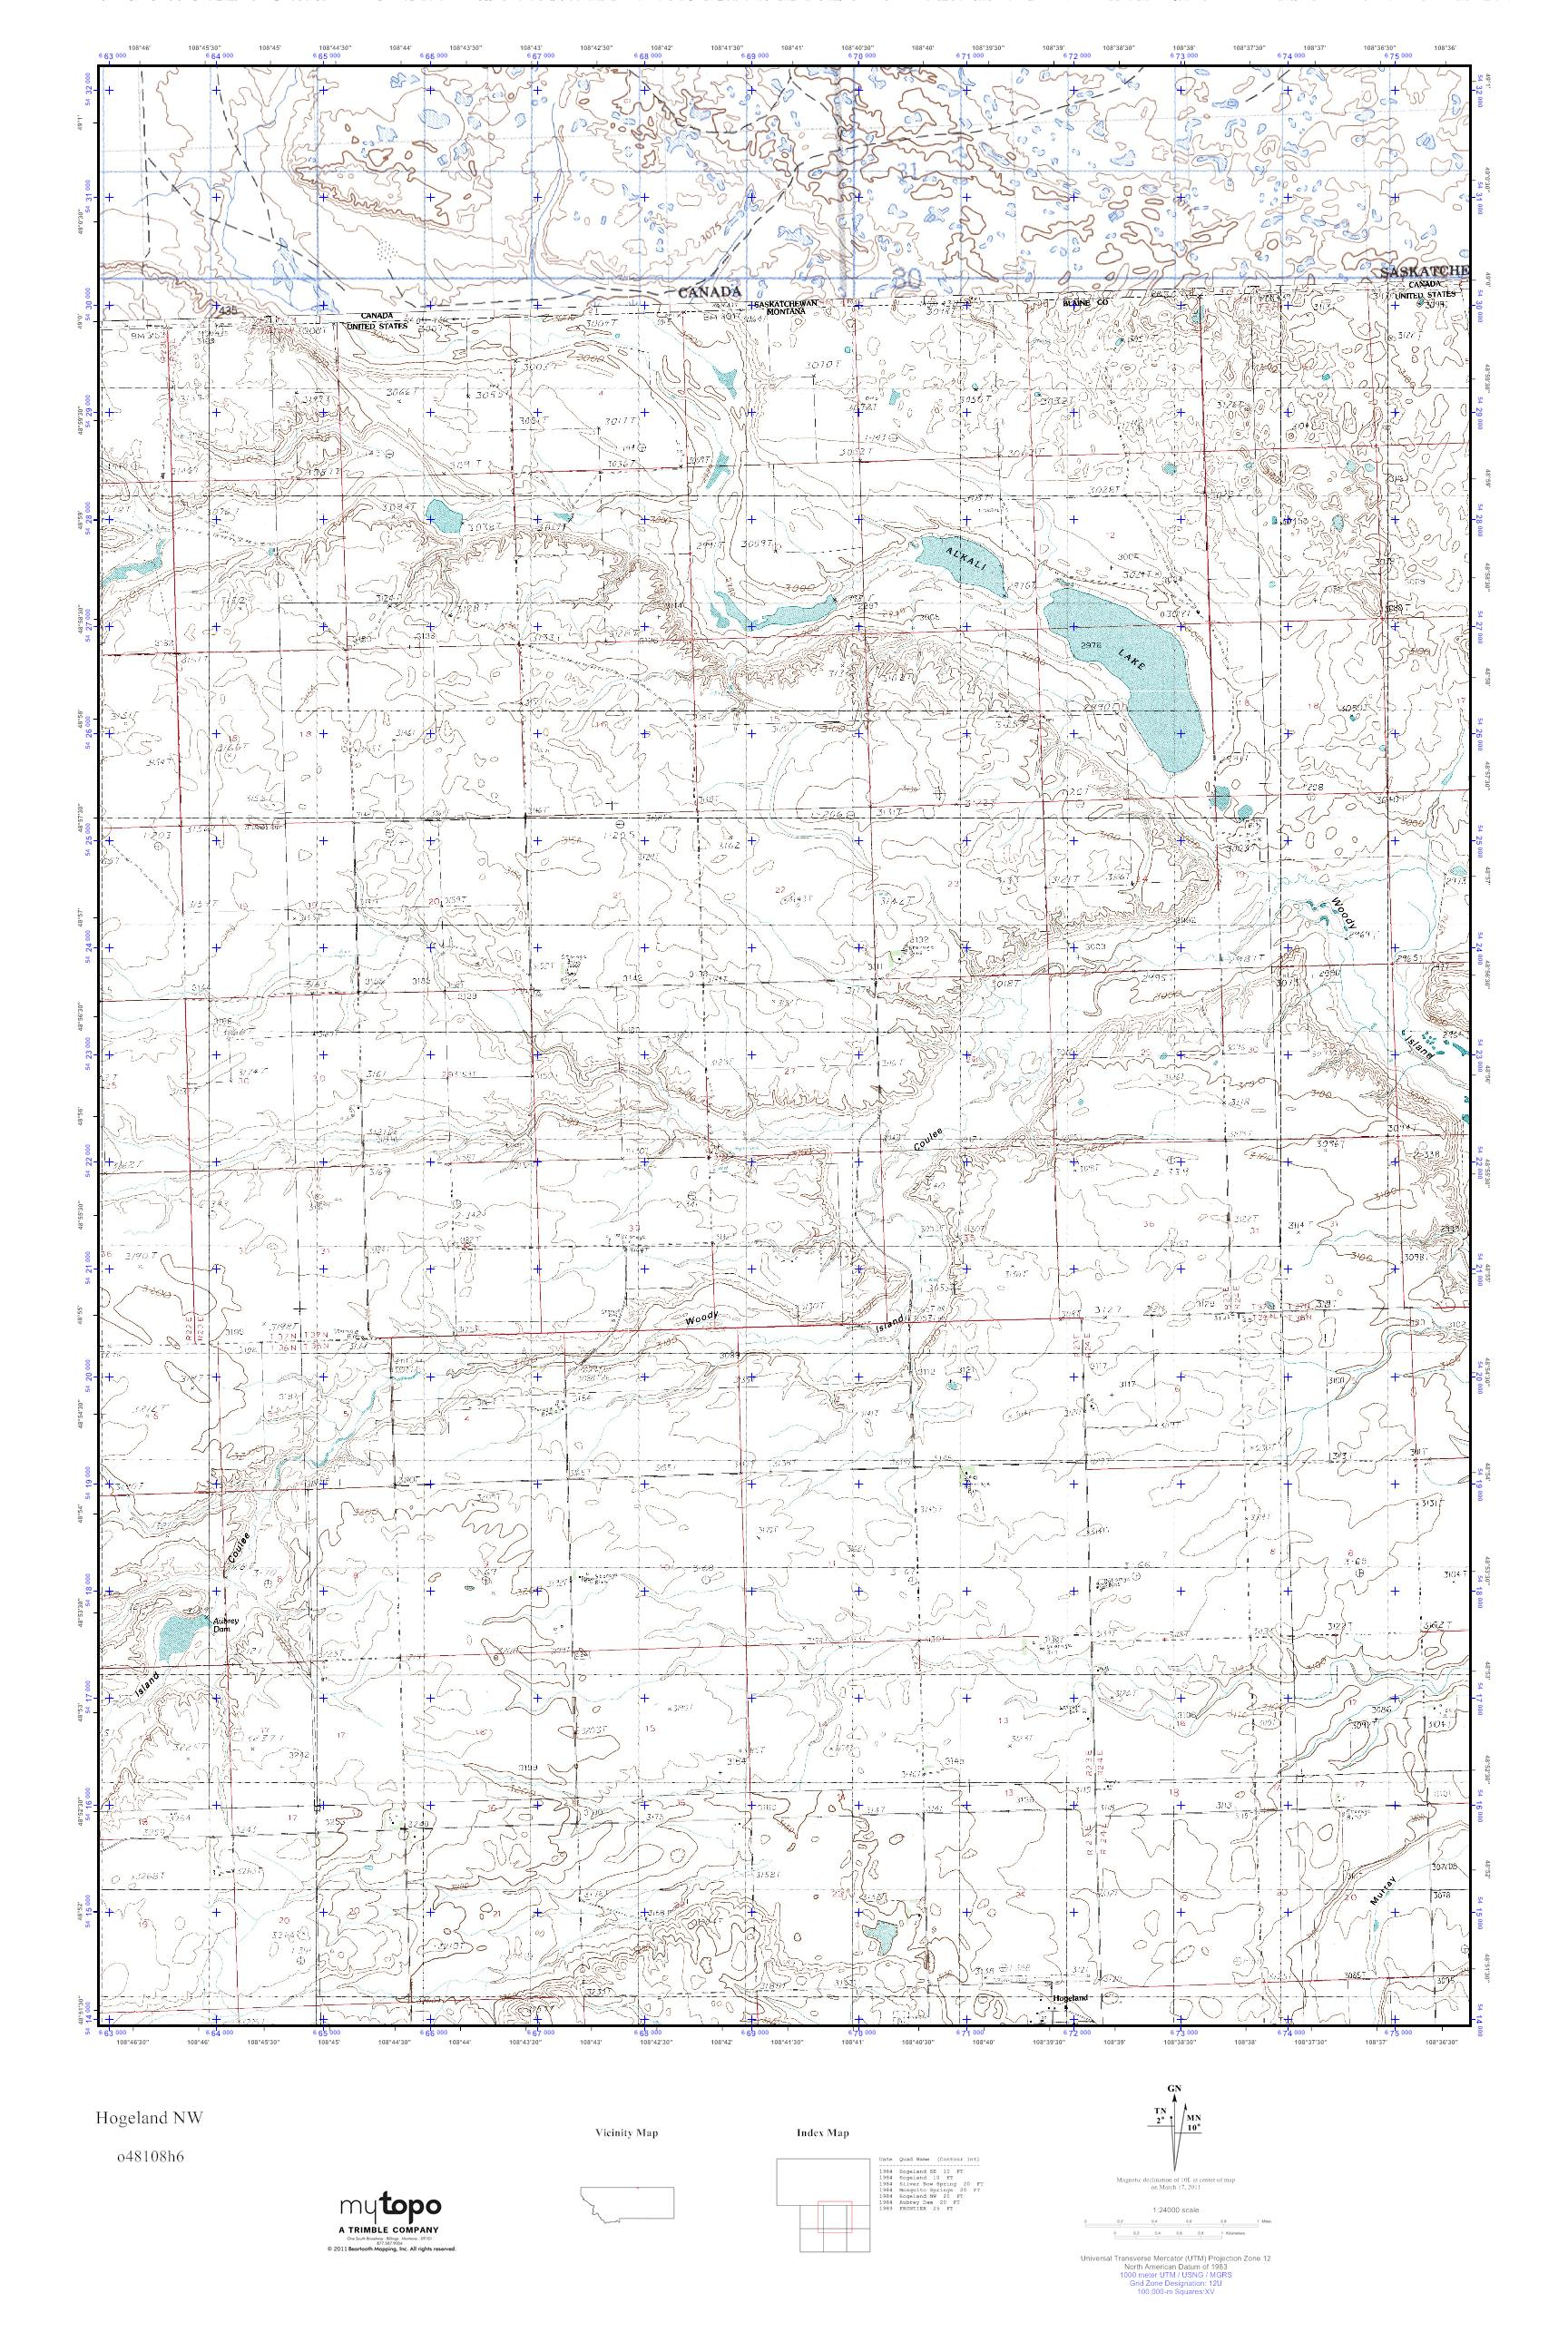 Montana blaine county hogeland - Build A Custom Map For The Hogeland Nw Usgs Quad